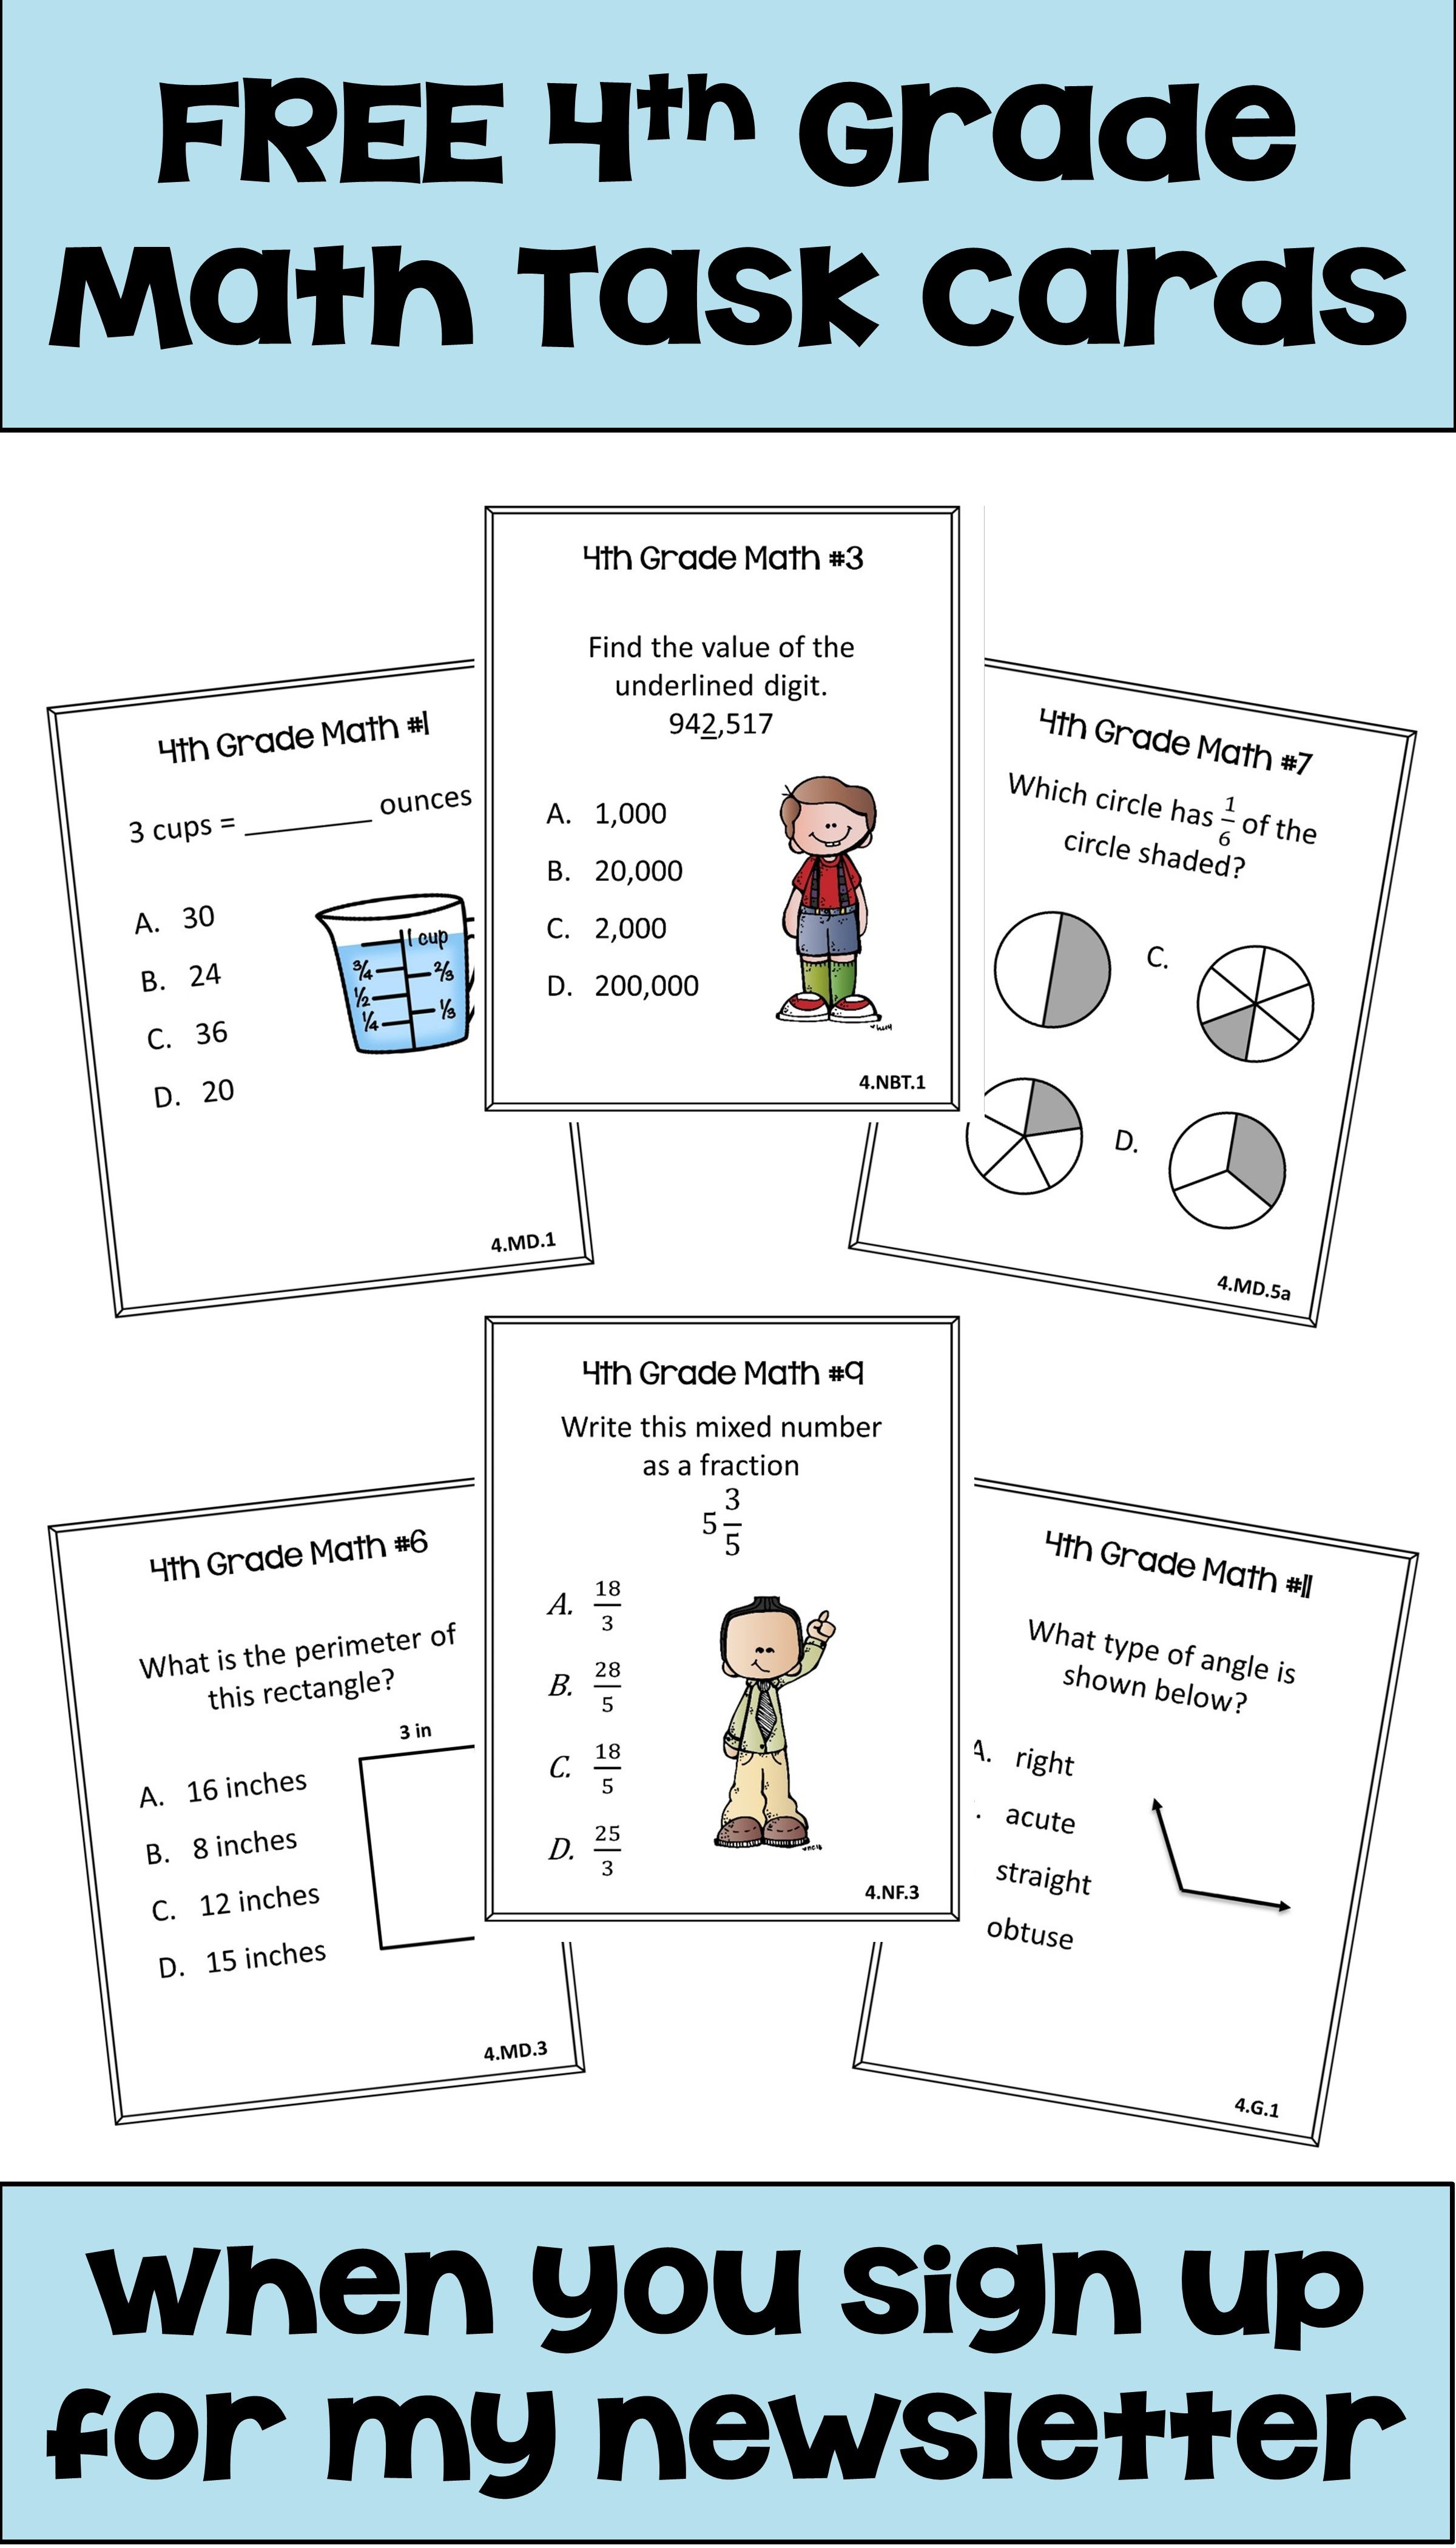 Sign Up For My Newsletter To Receive These 4th Grade Math